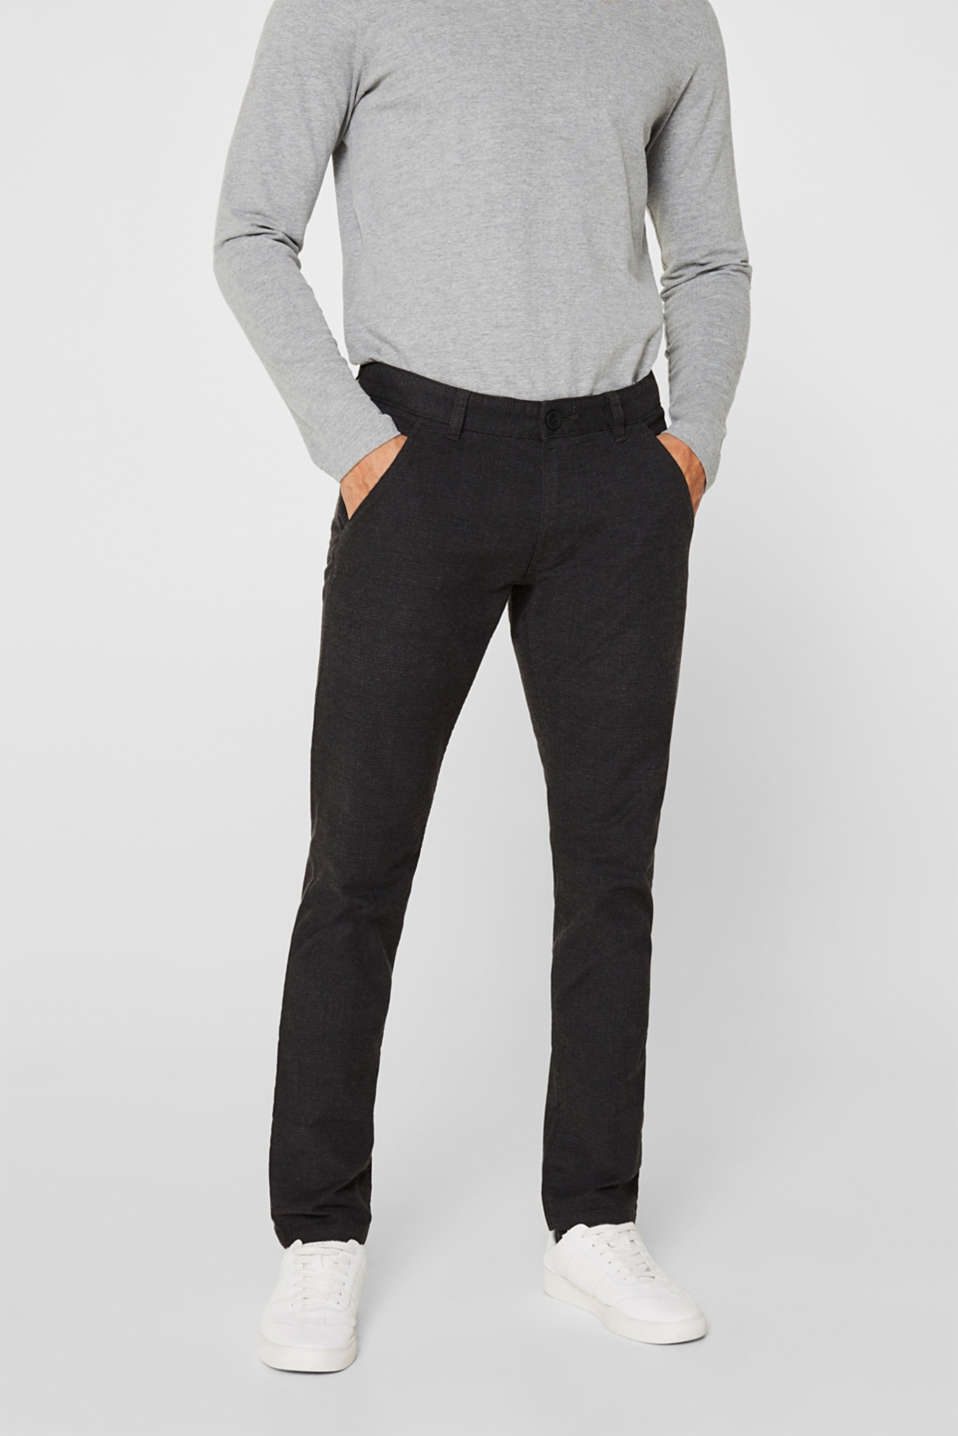 Pants woven Slim fit, ANTHRACITE, detail image number 0